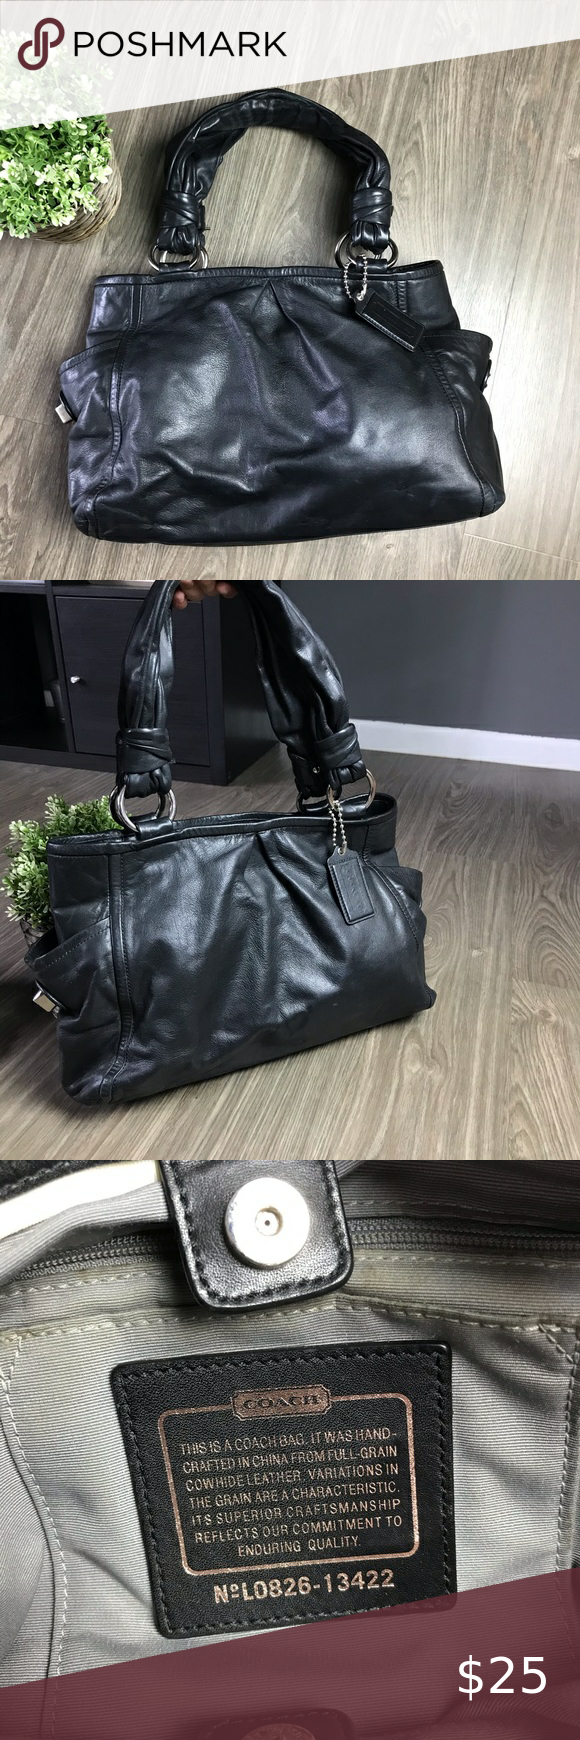 """Coach Parkey Riley Black Leather Satchel 🖤 GUC✨ 100% authentic ✅  Creed #L0826-13422 Black Leather  ••Missing the turnlock on the right outer pocket** one of the handles is a little damaged, see pics 📸 please*** Dimensions aprox 16""""L x 10.5""""H x 5""""D  📬Fast shipping  💲Make an offer Coach Bags Satchels"""